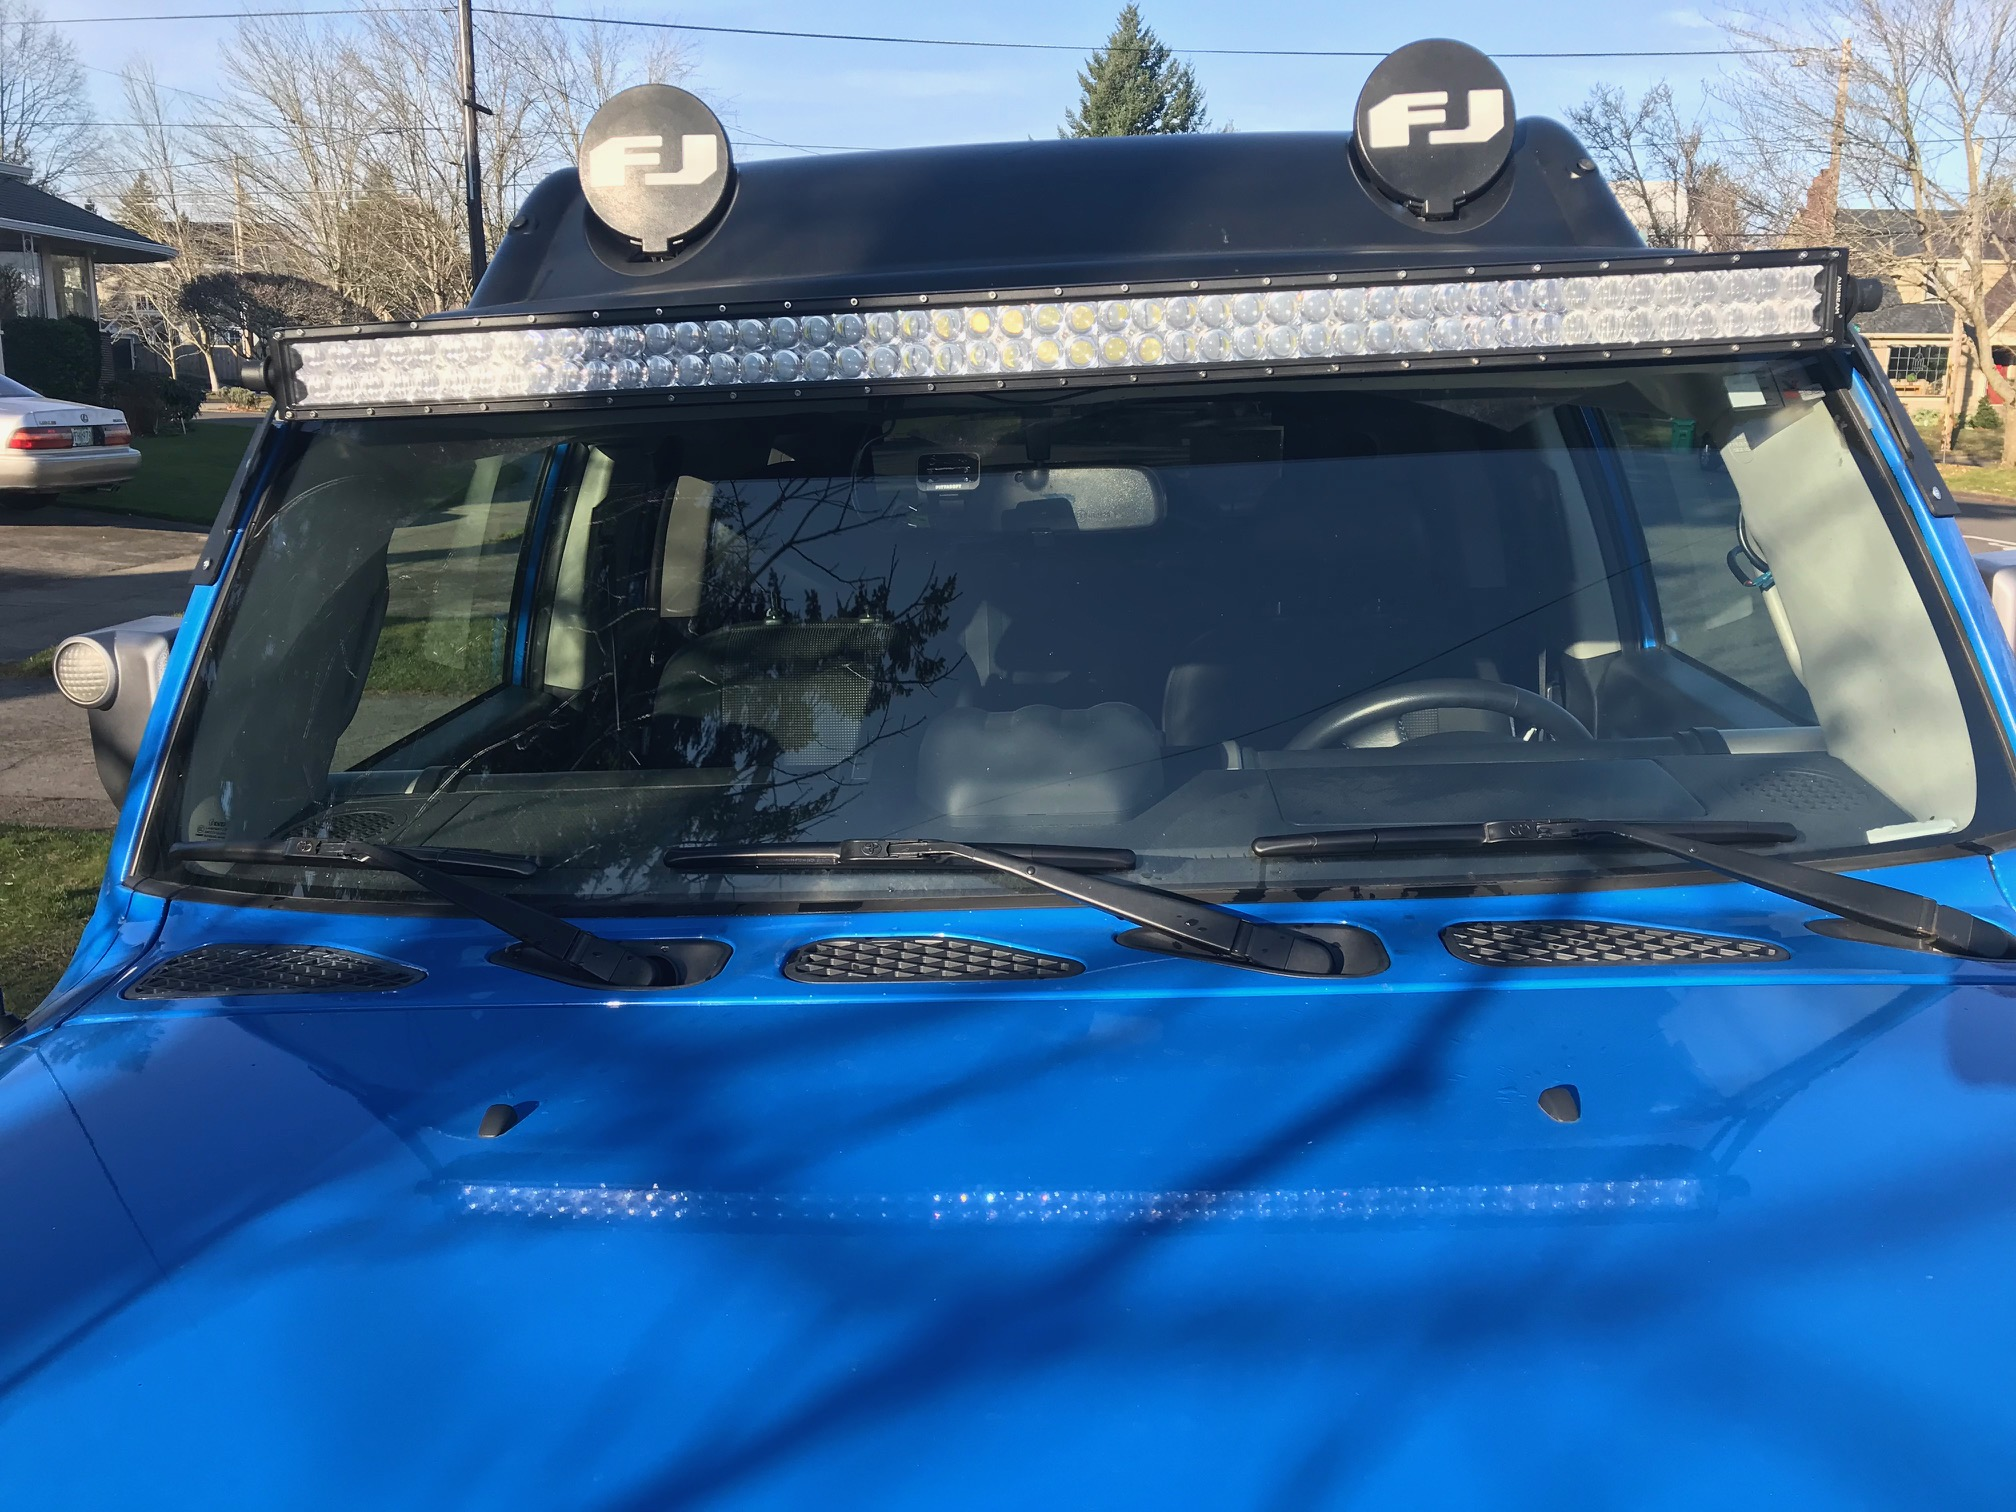 What did you do TO your FJ Cruiser TODAY?-img_6788.jpg